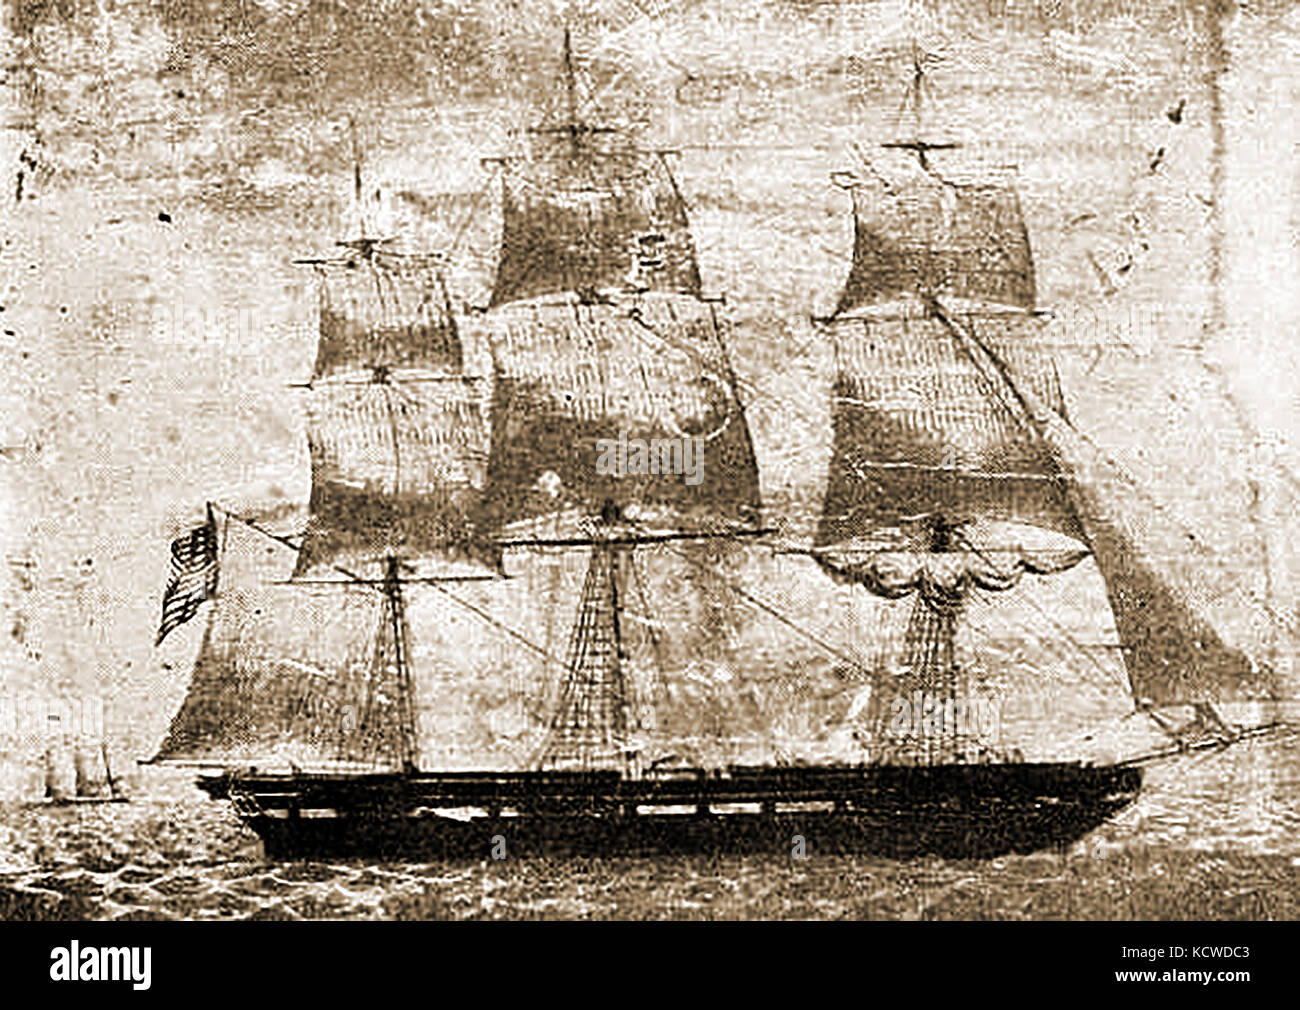 The BOSTONIAN a 1099 ton US ship built at  Boston in 1854 by  Donald McKay - Stock Image